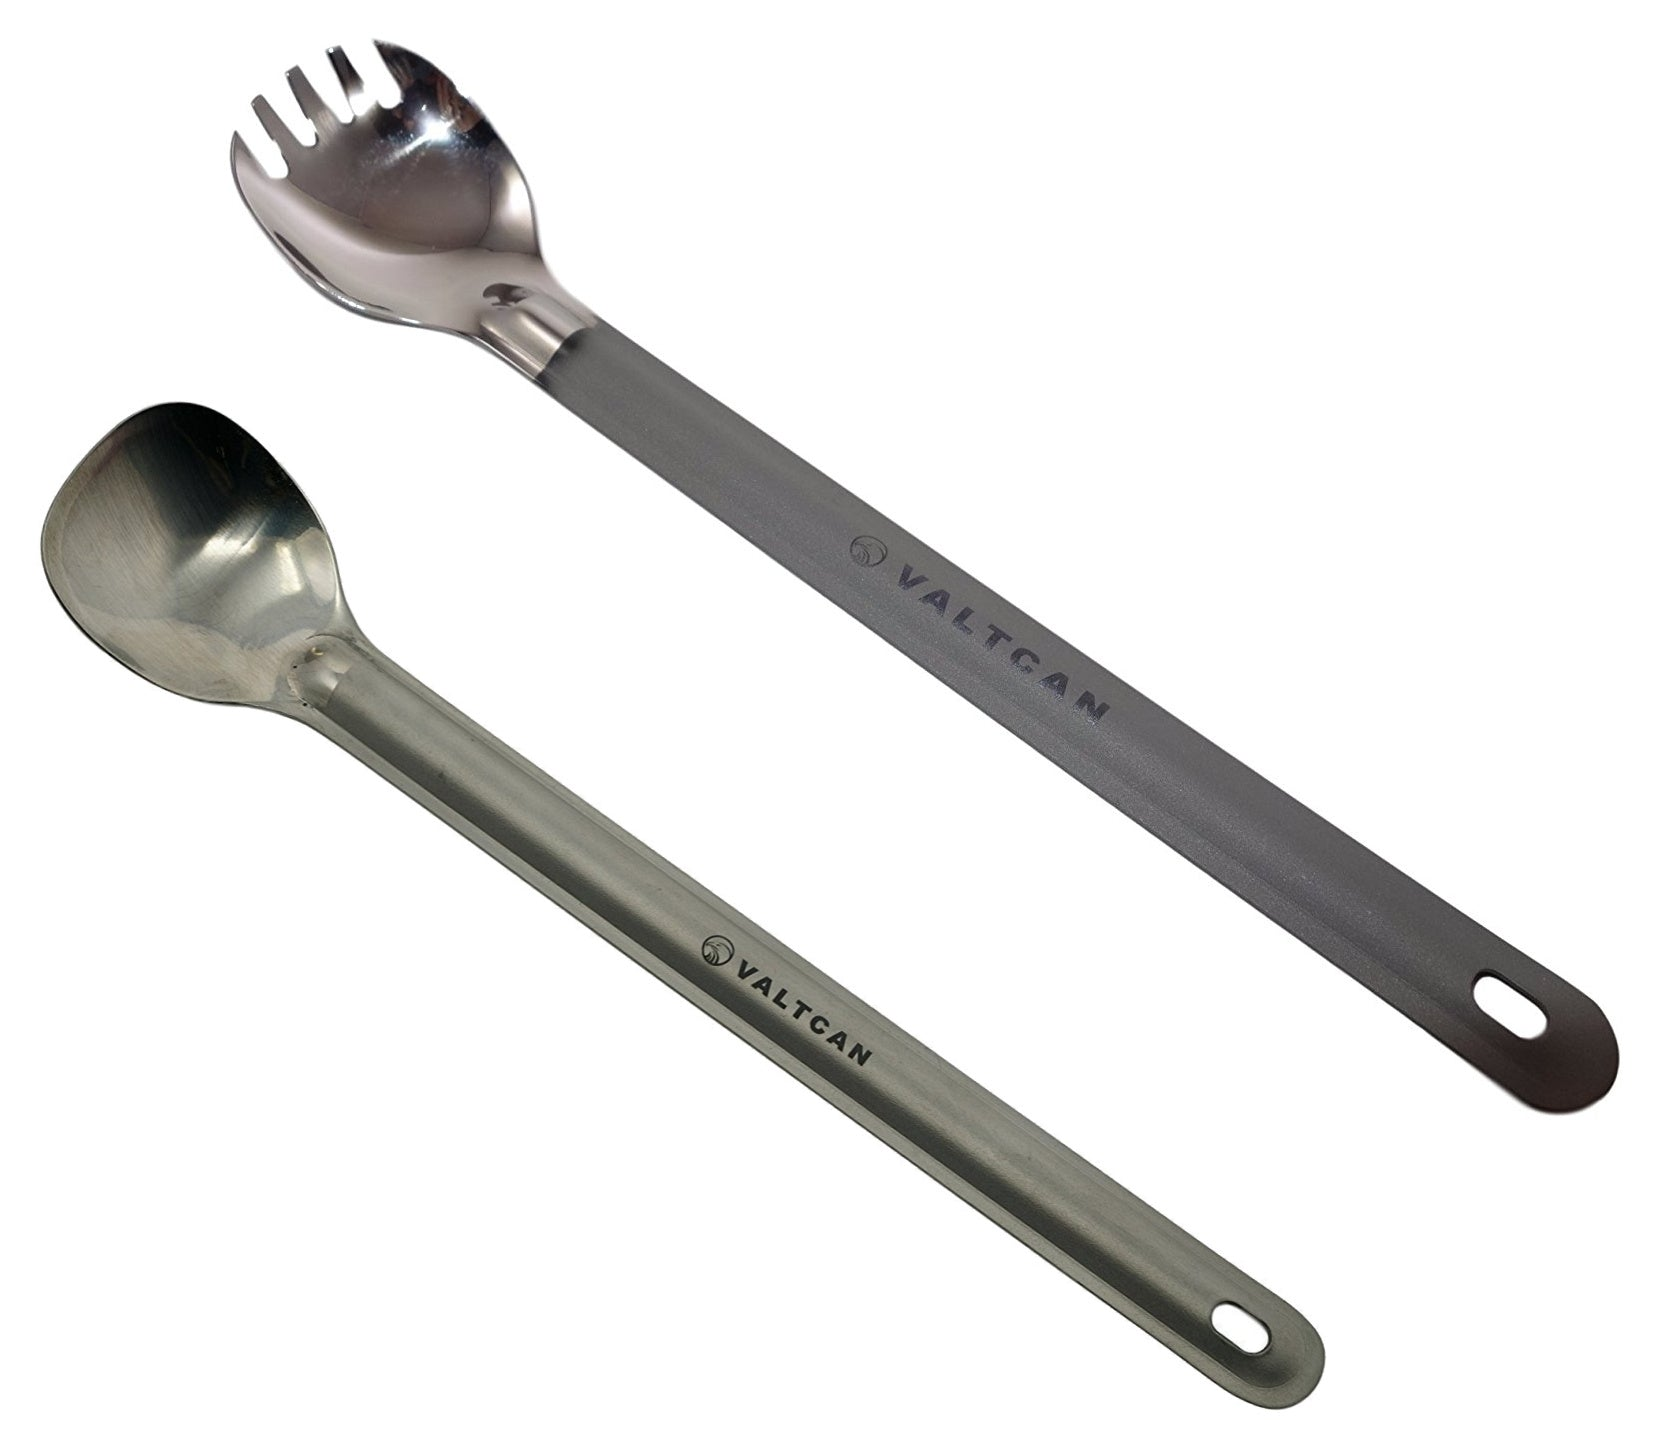 Valtcan Titanium Spork and Spoon Set Camping Essentials